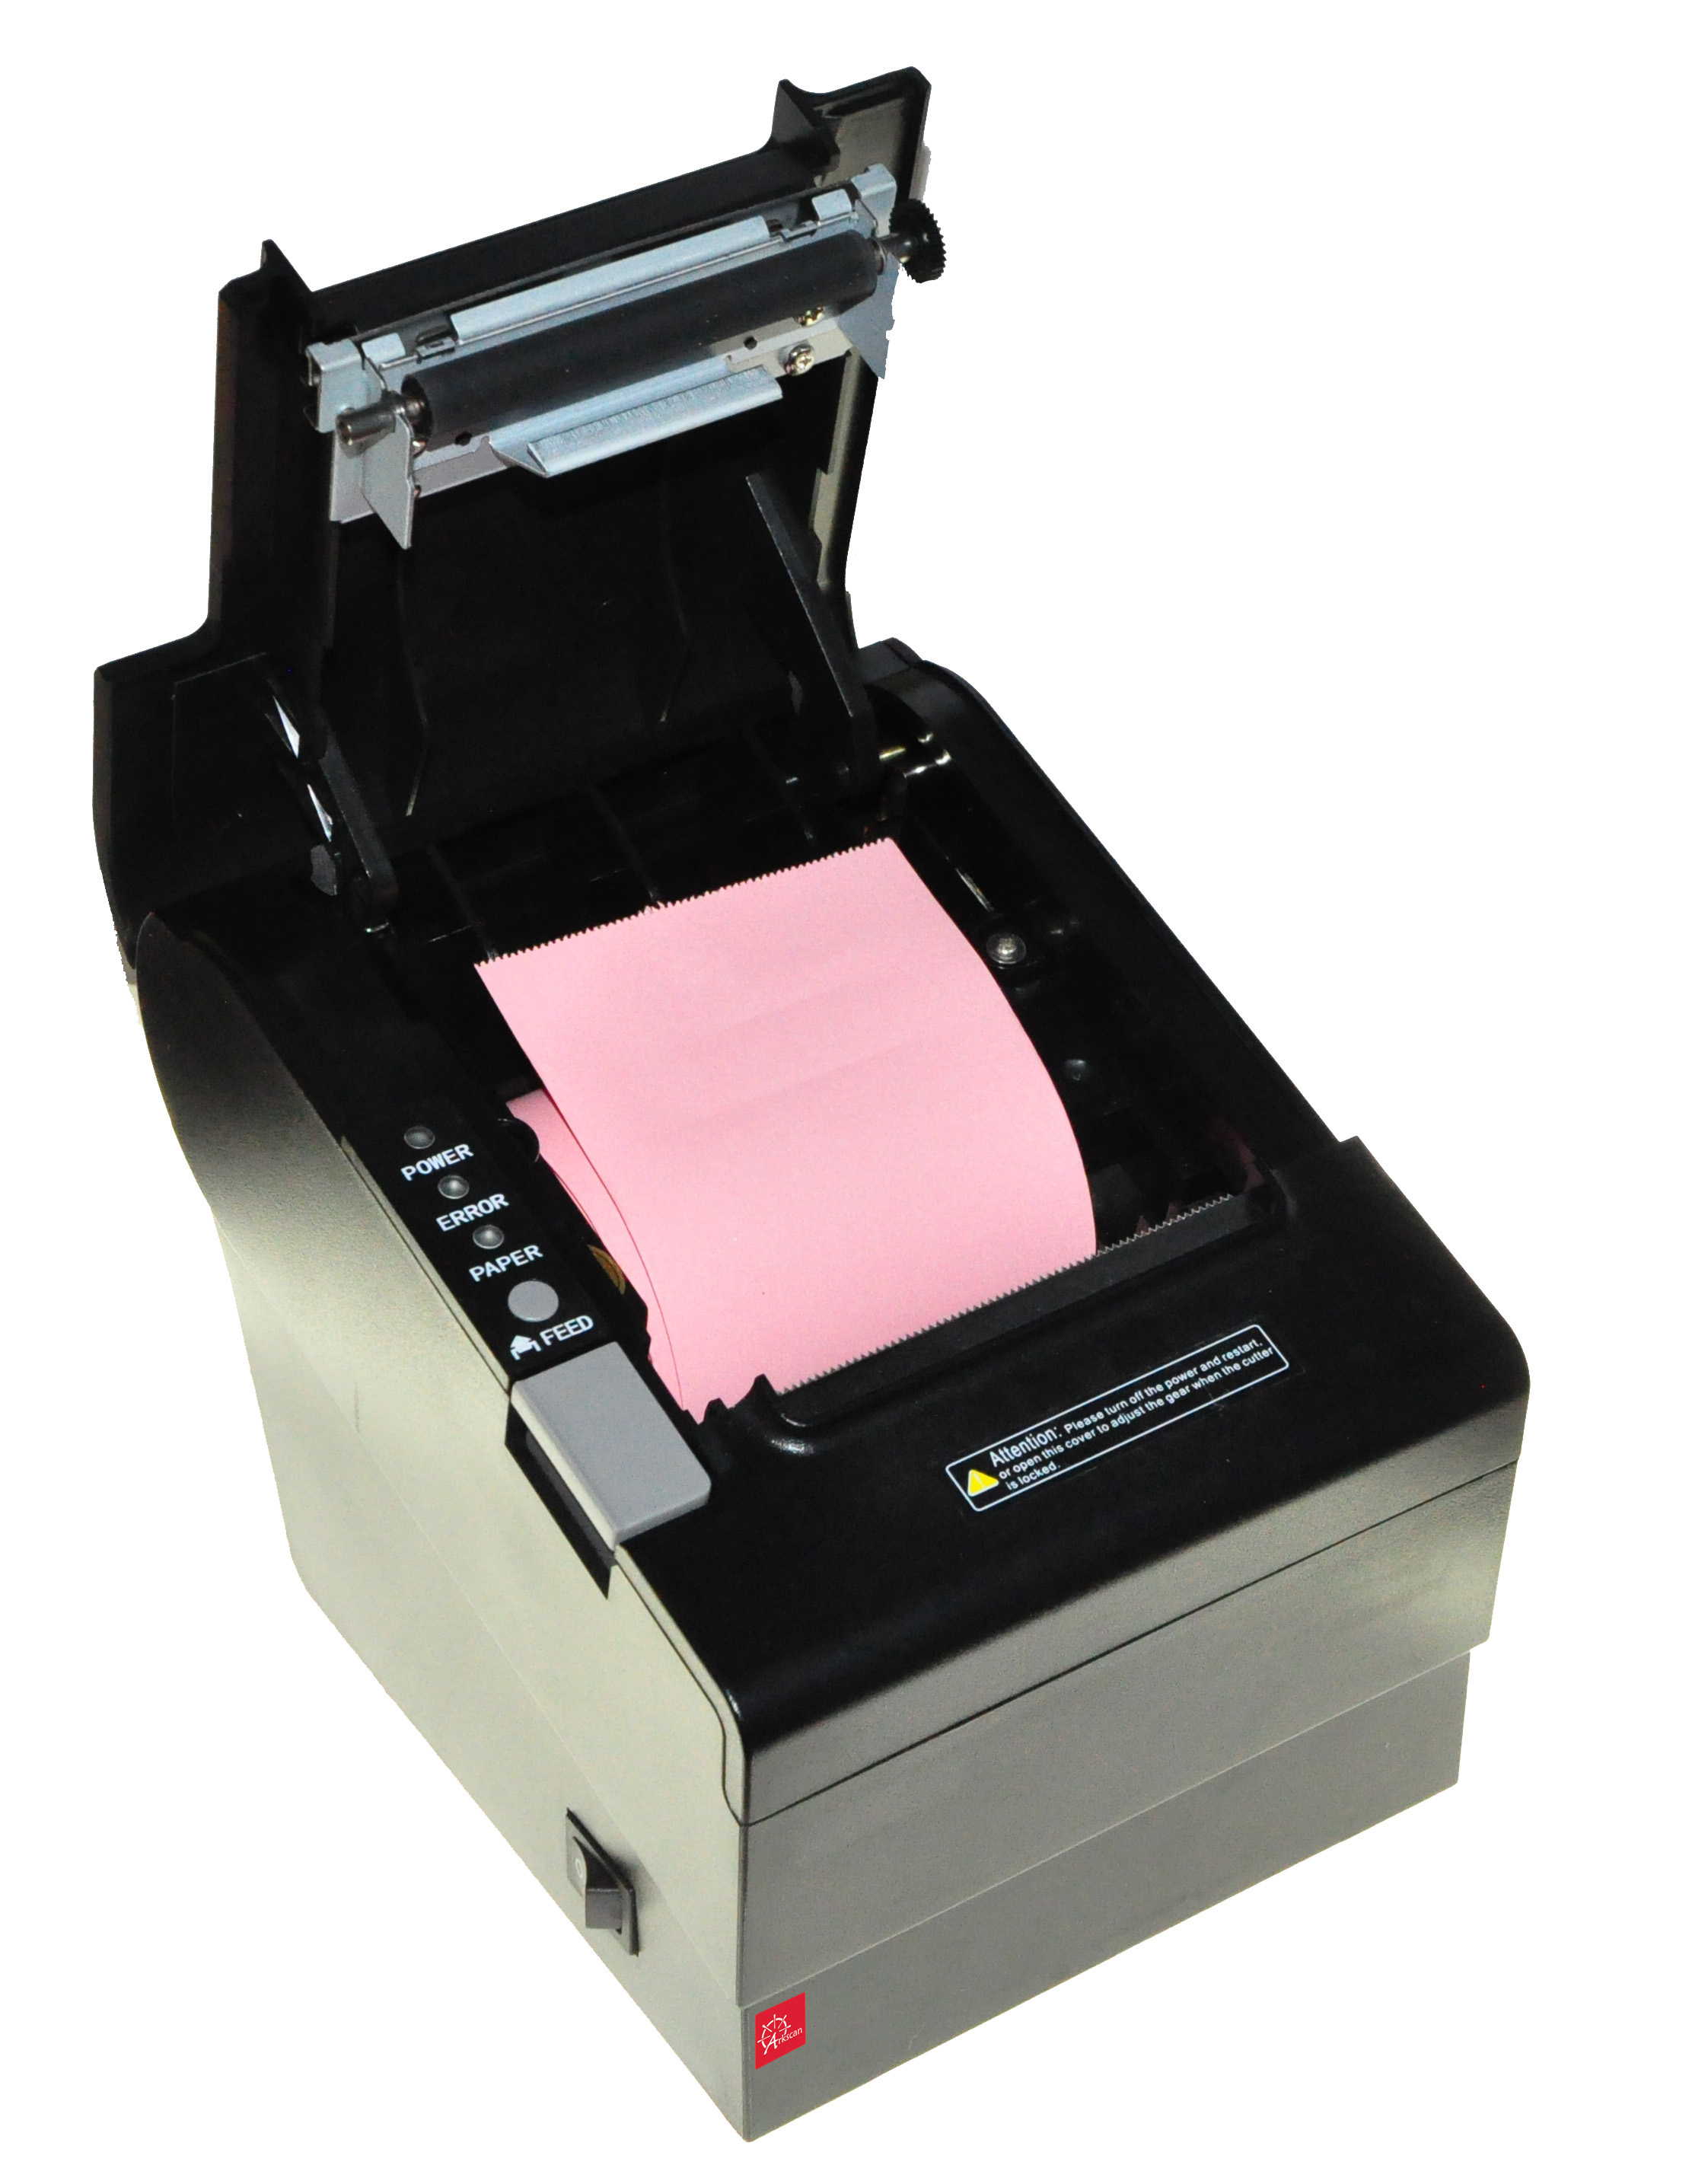 AS80 Receipt Printer - ARKSCAN, LLC